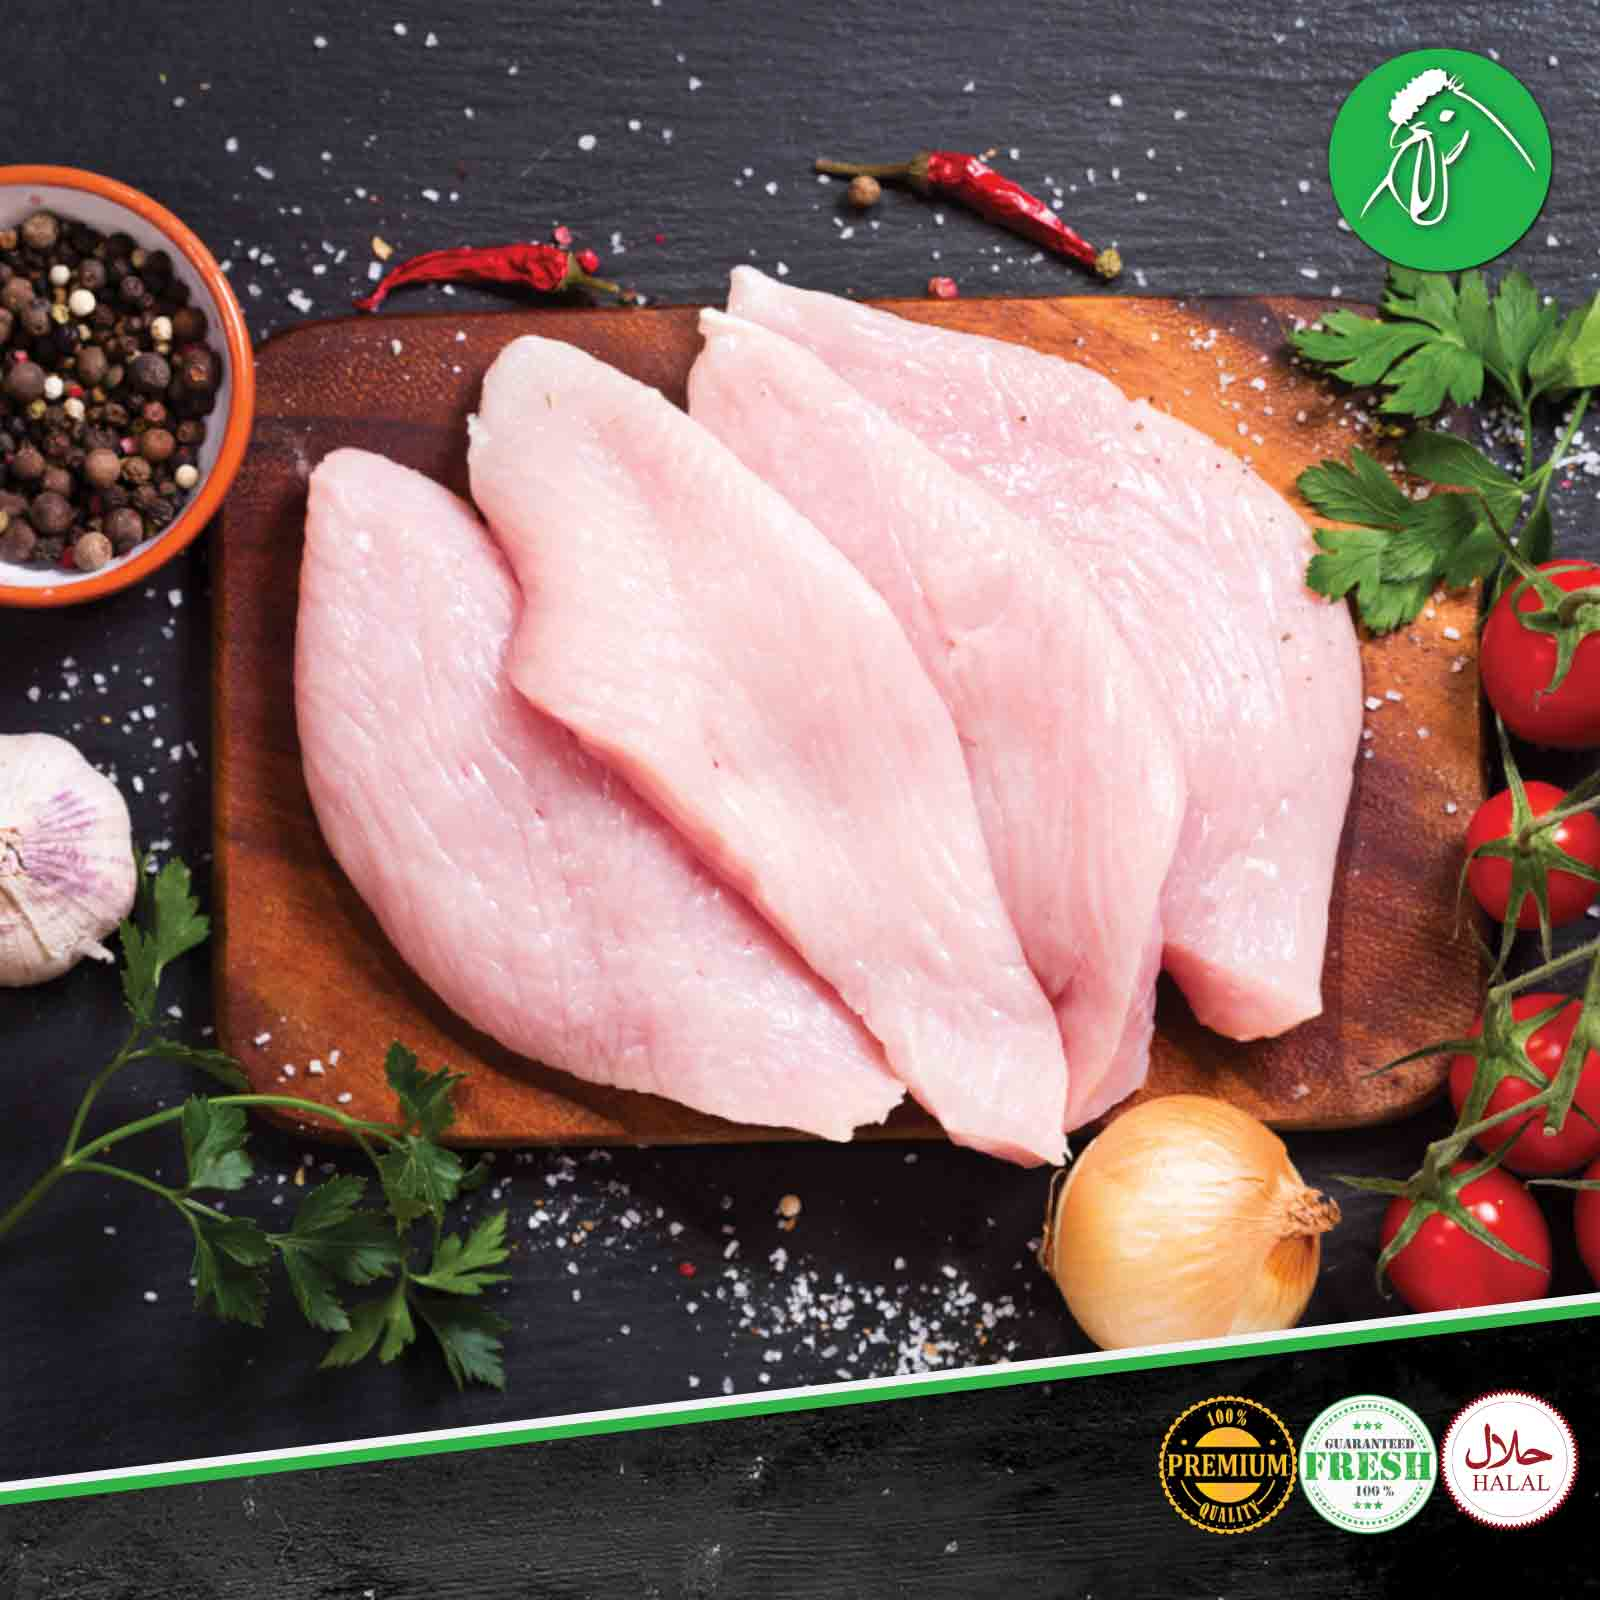 FRESH-CHICKEN-FILLET-MEATONCLICK